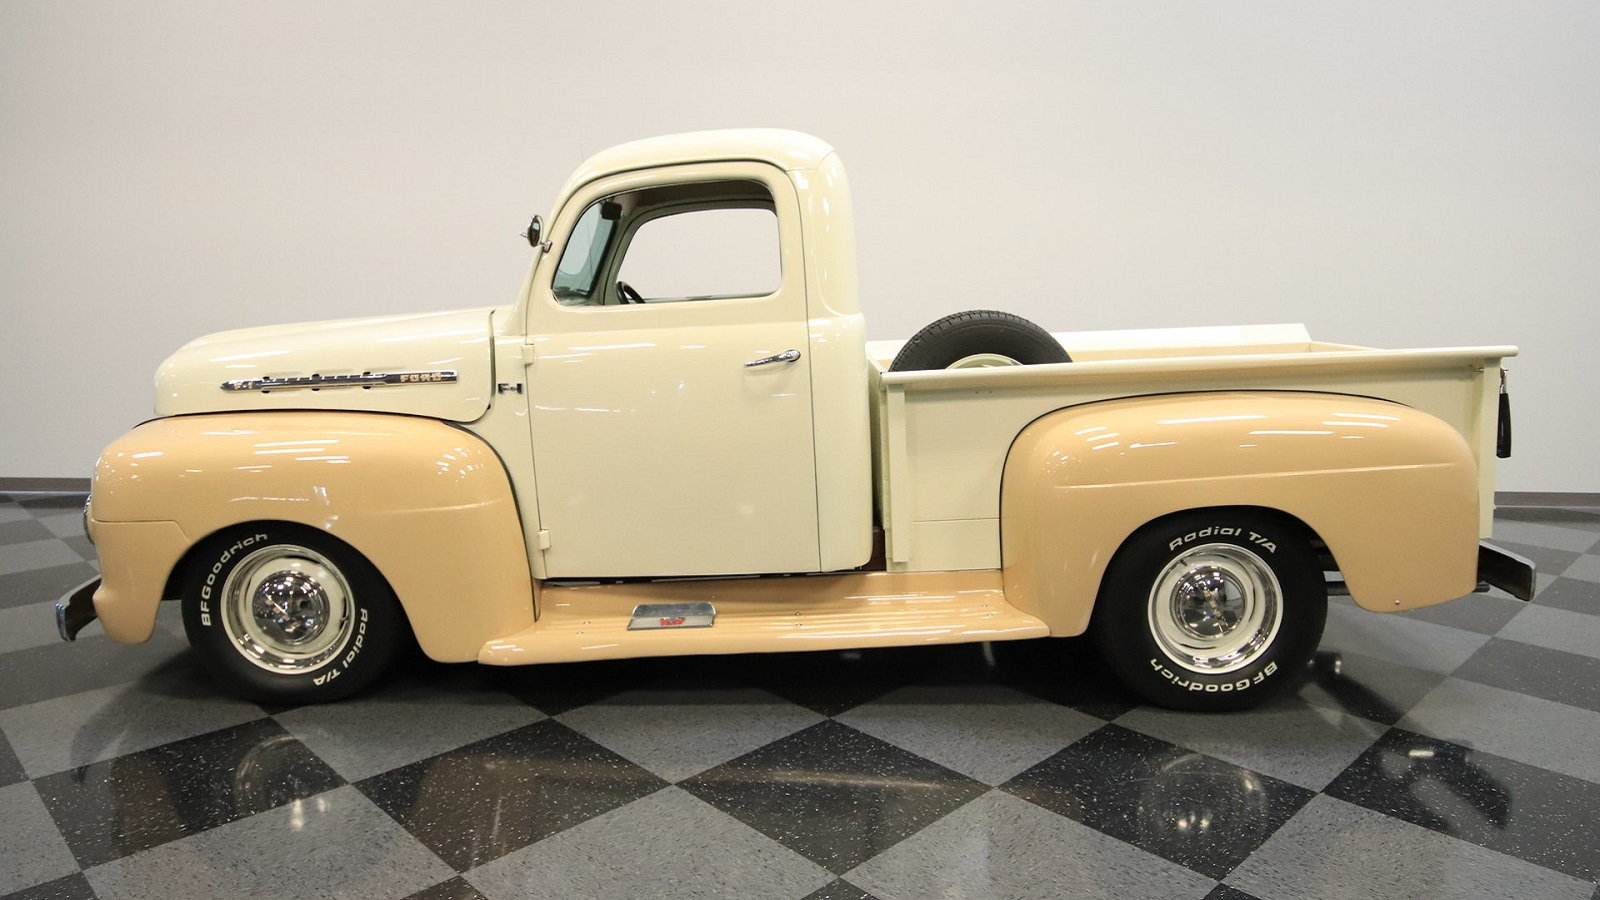 The 1951 Pickup that is Totally Boss